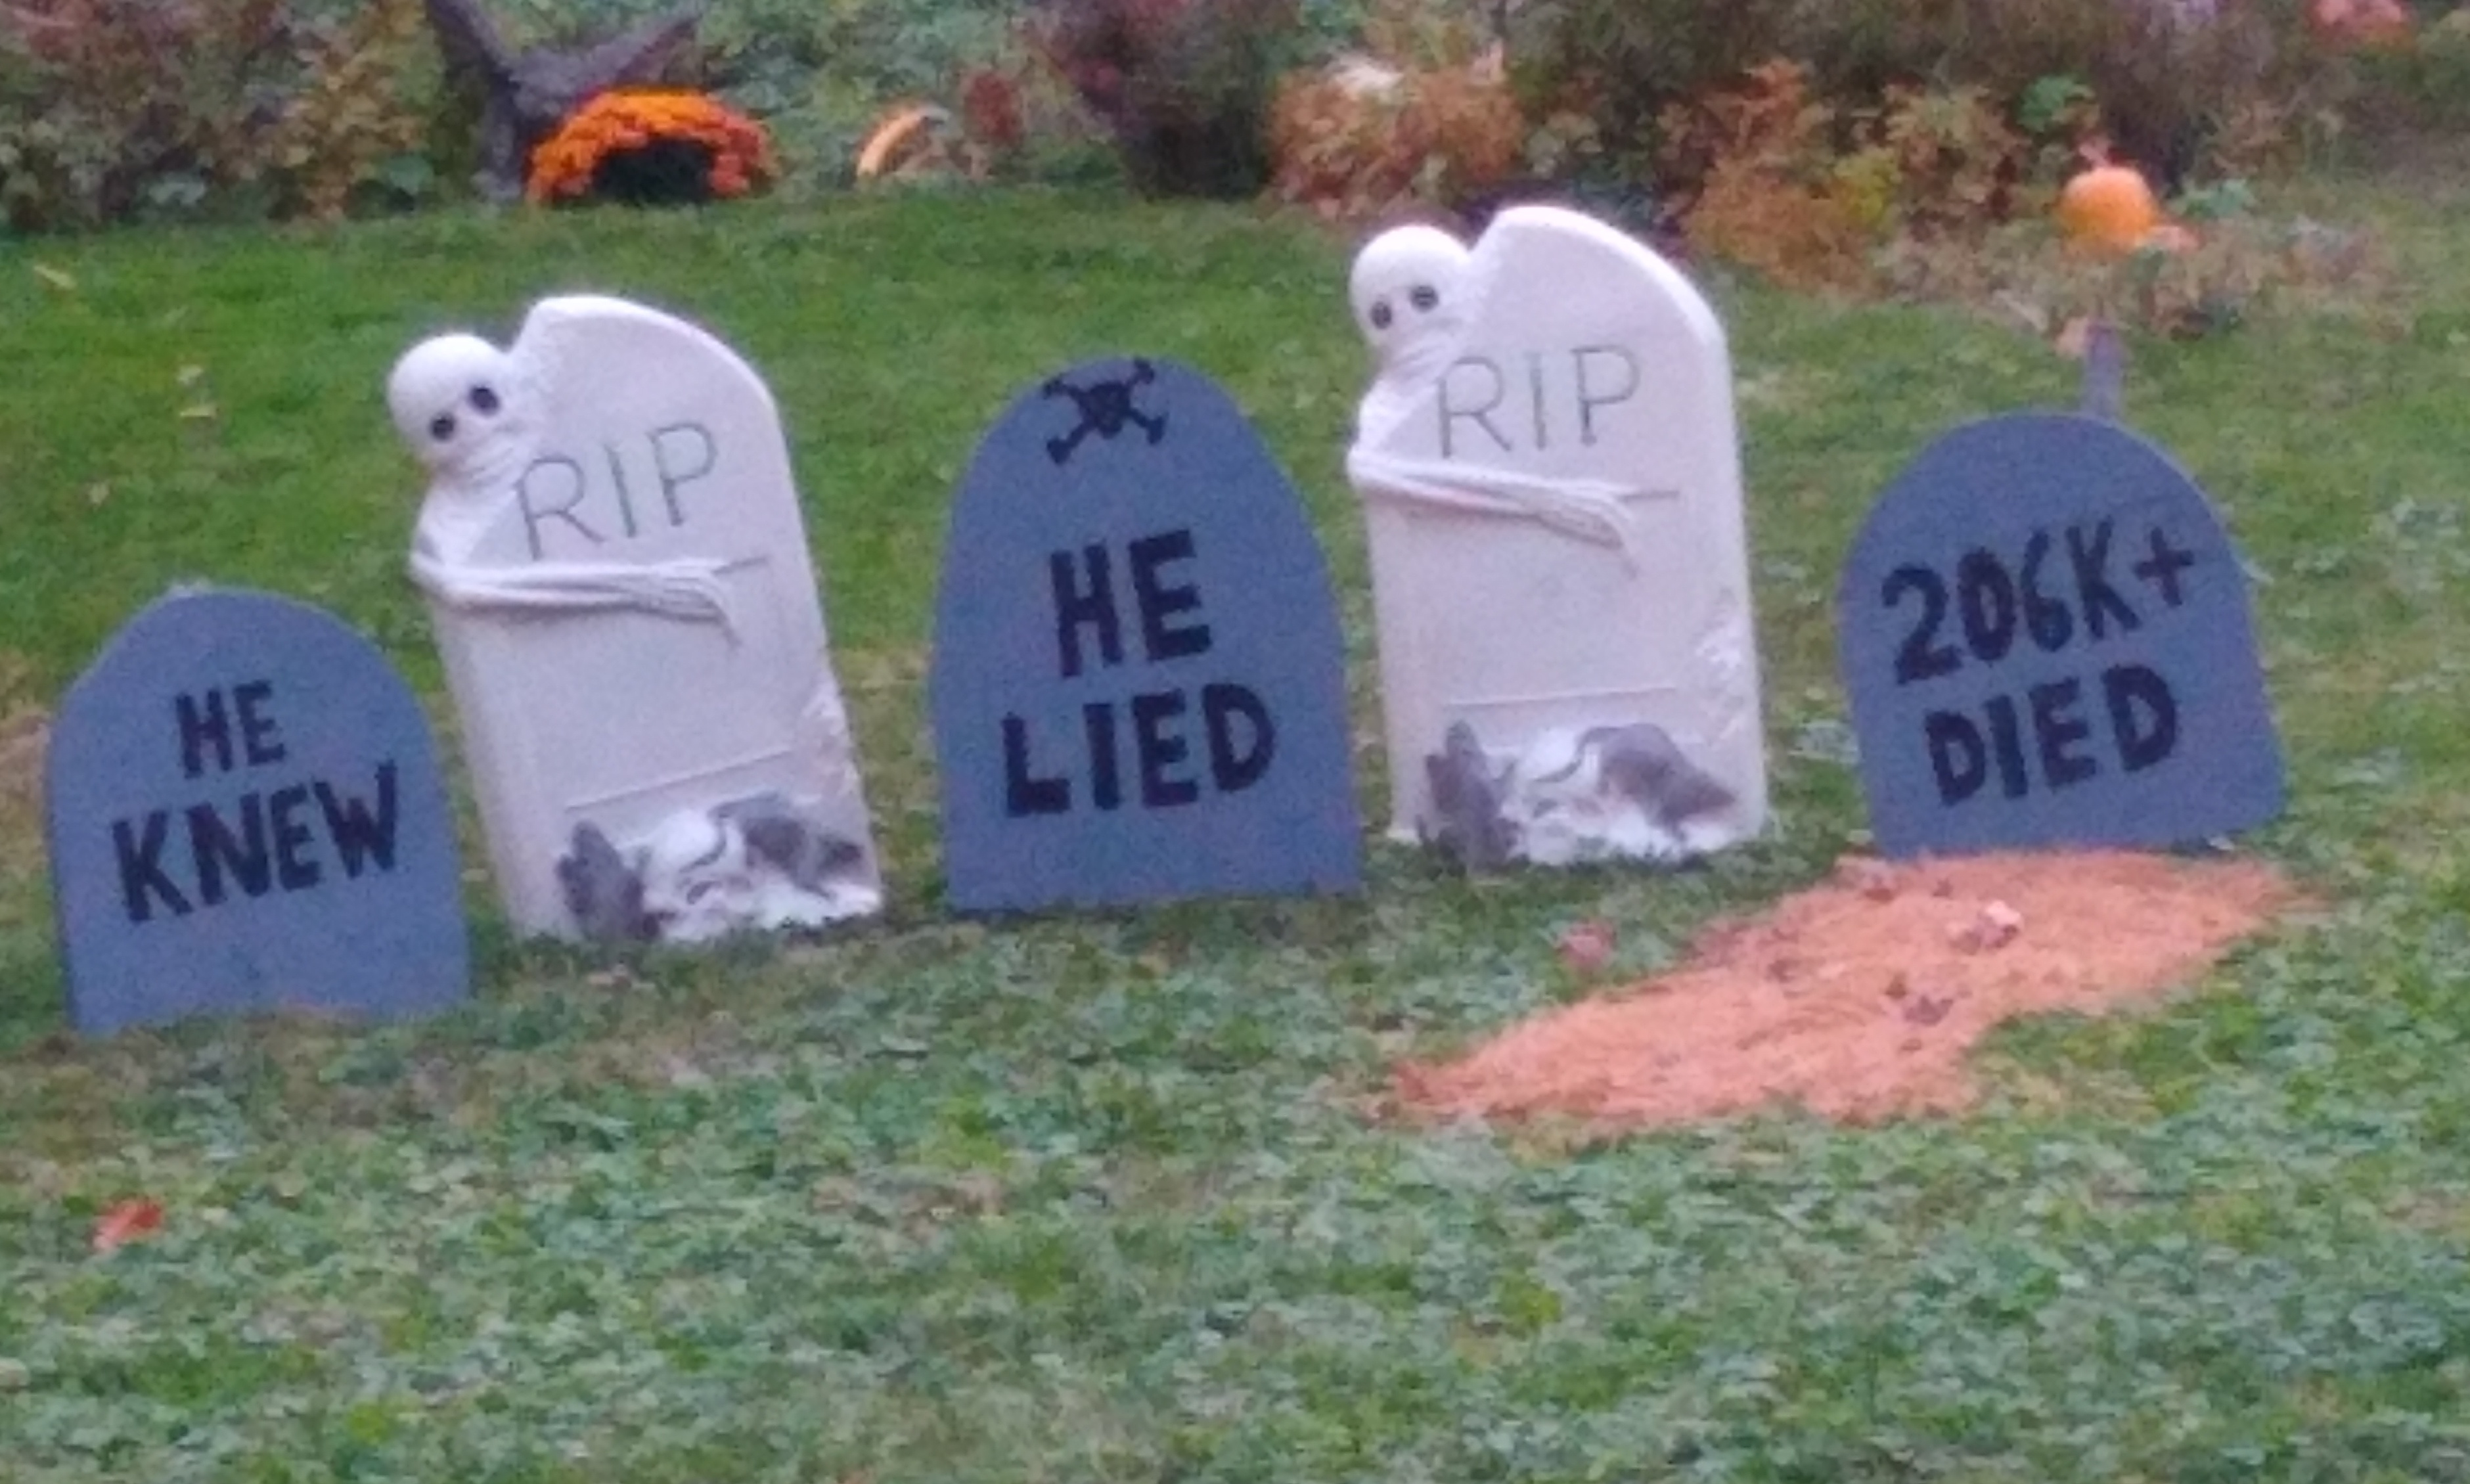 Halloween-style headstone decorations say 'he knew,' 'he lied,' and '206K died'